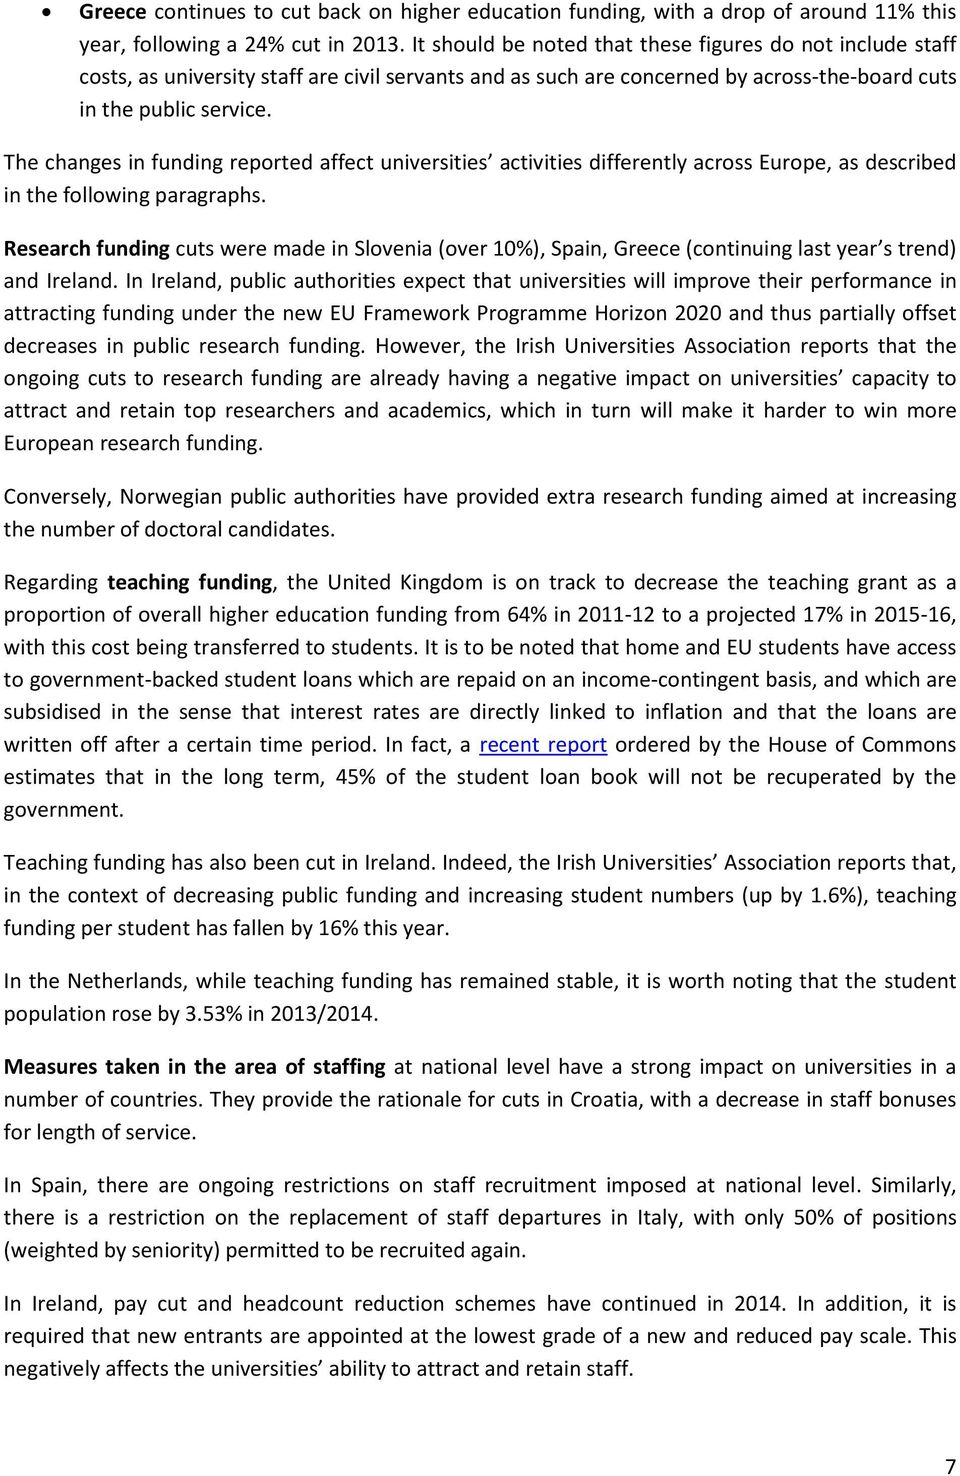 The changes in funding reported affect universities activities differently across Europe, as described in the following paragraphs.